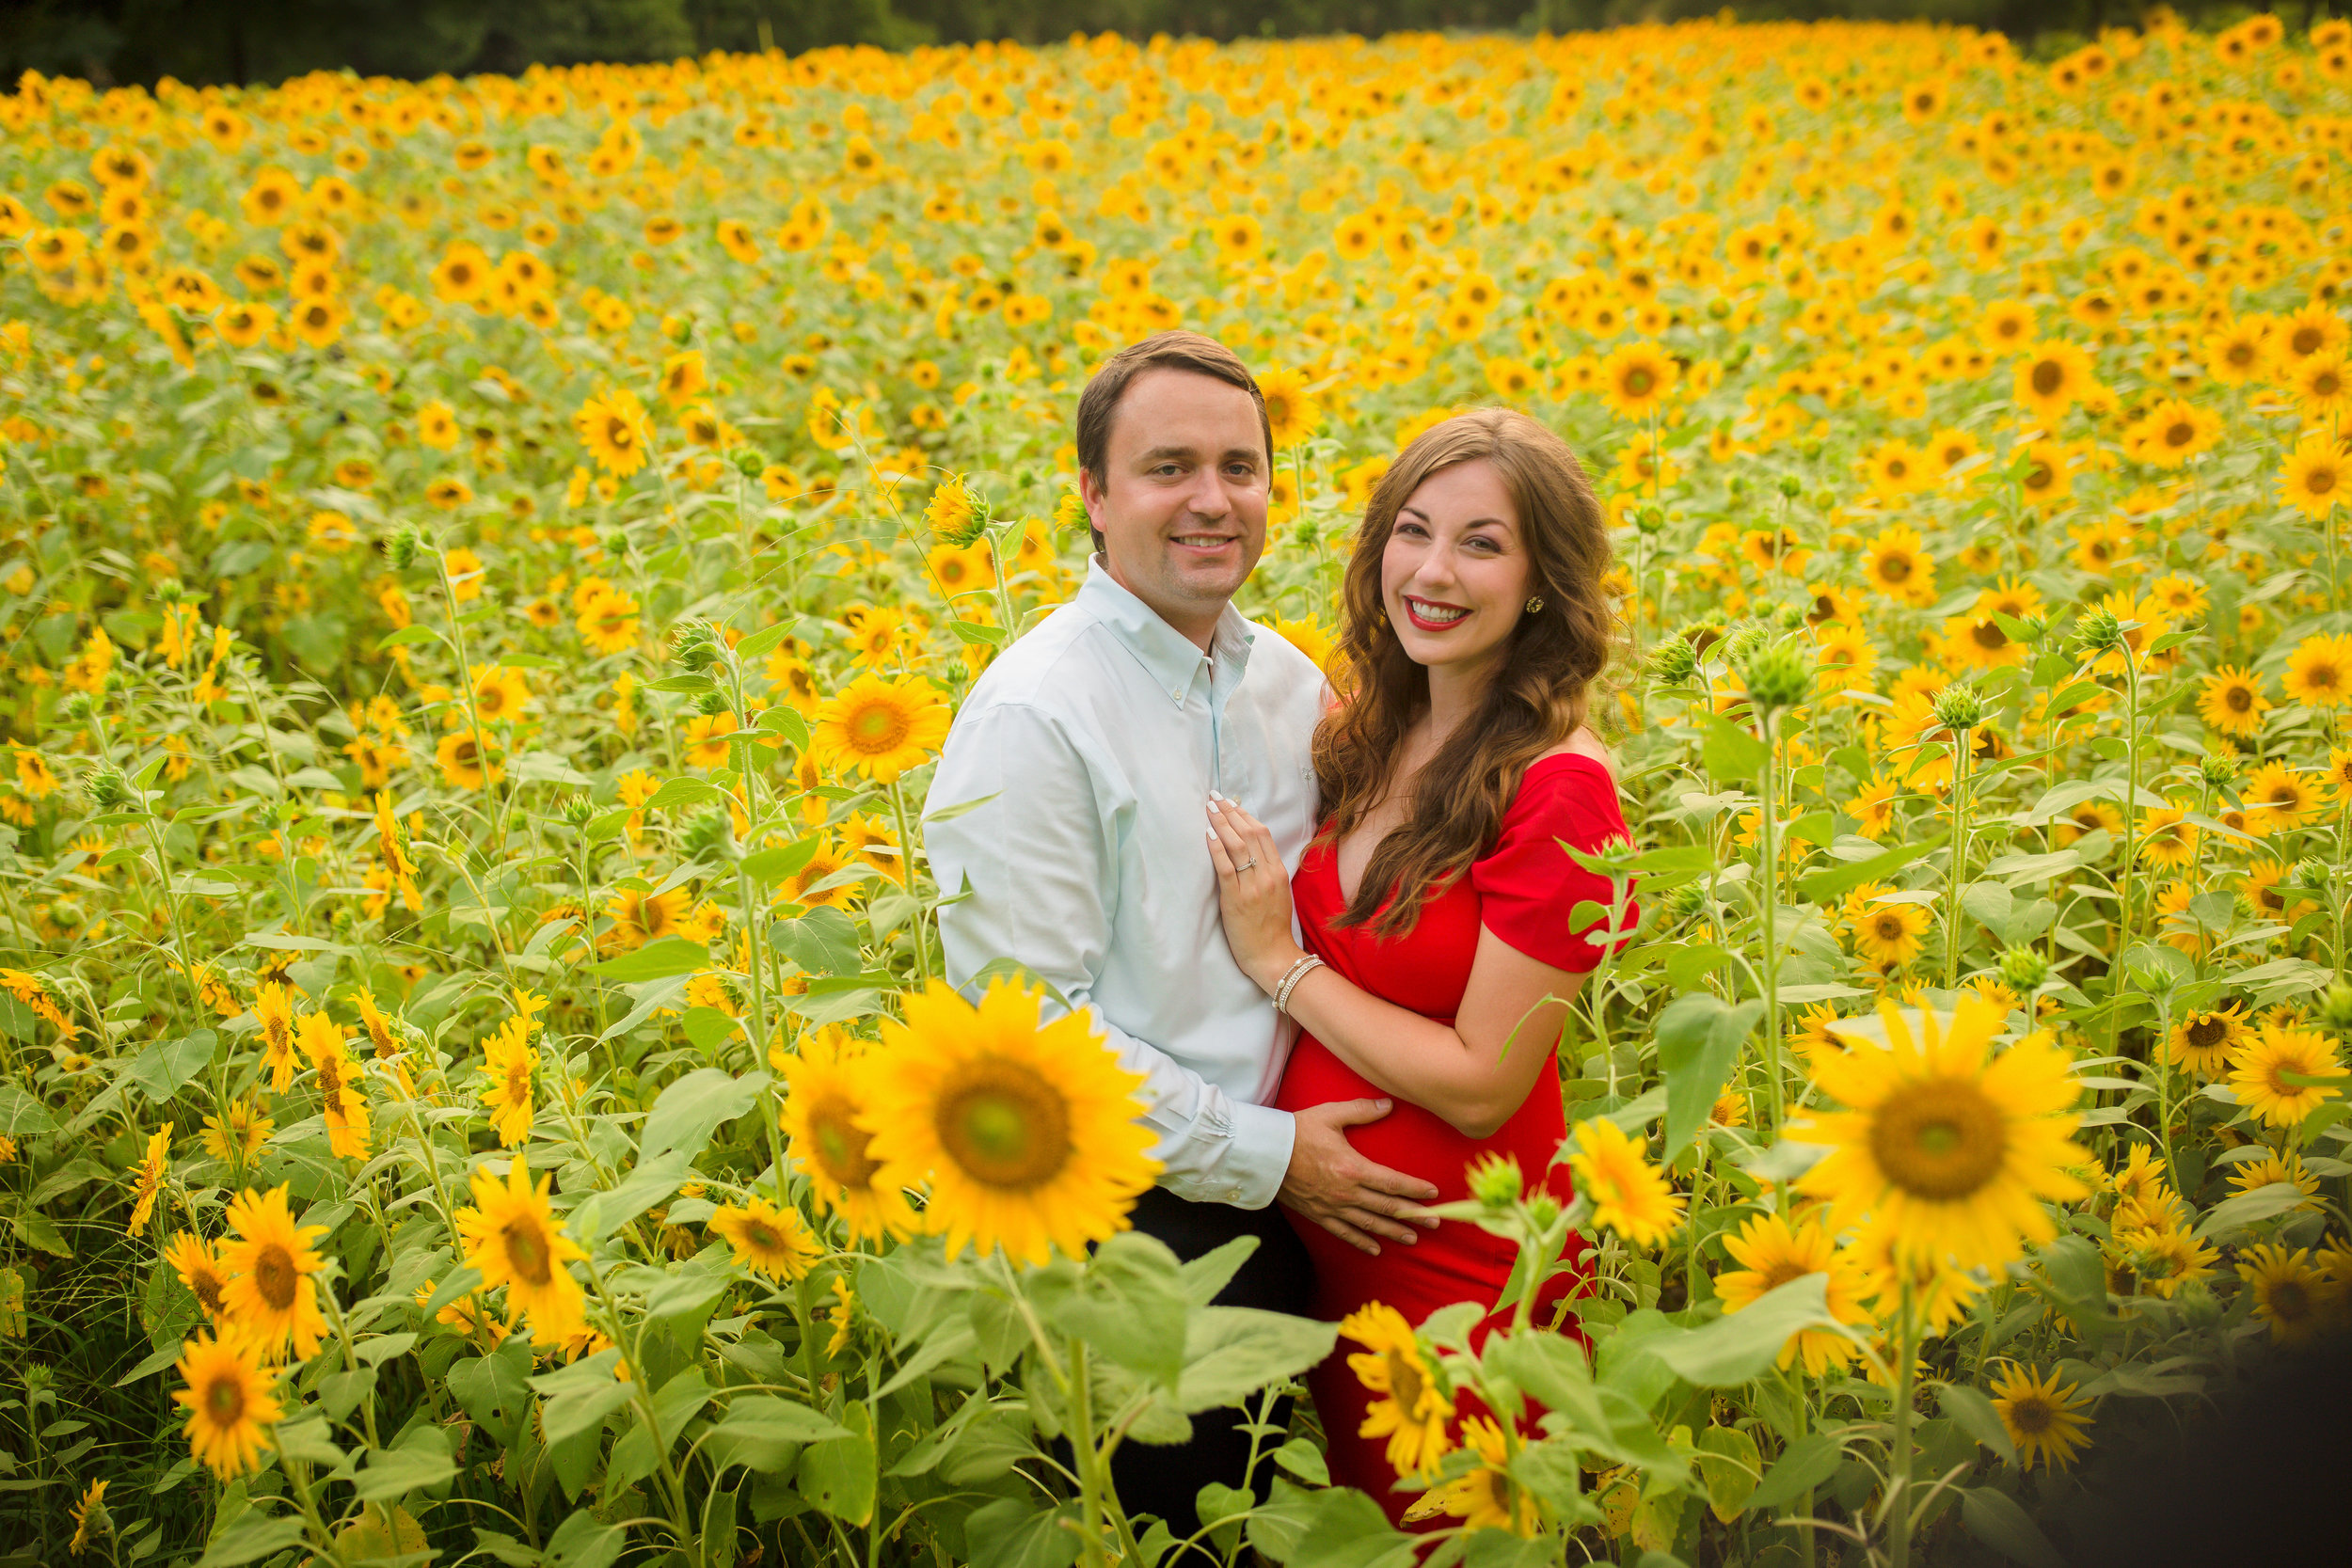 Alexis-&-Quent-Sunflower-Maternity-Nashville-Maternity-Photographer-Chelsea-Meadows-Photography-(33).jpg